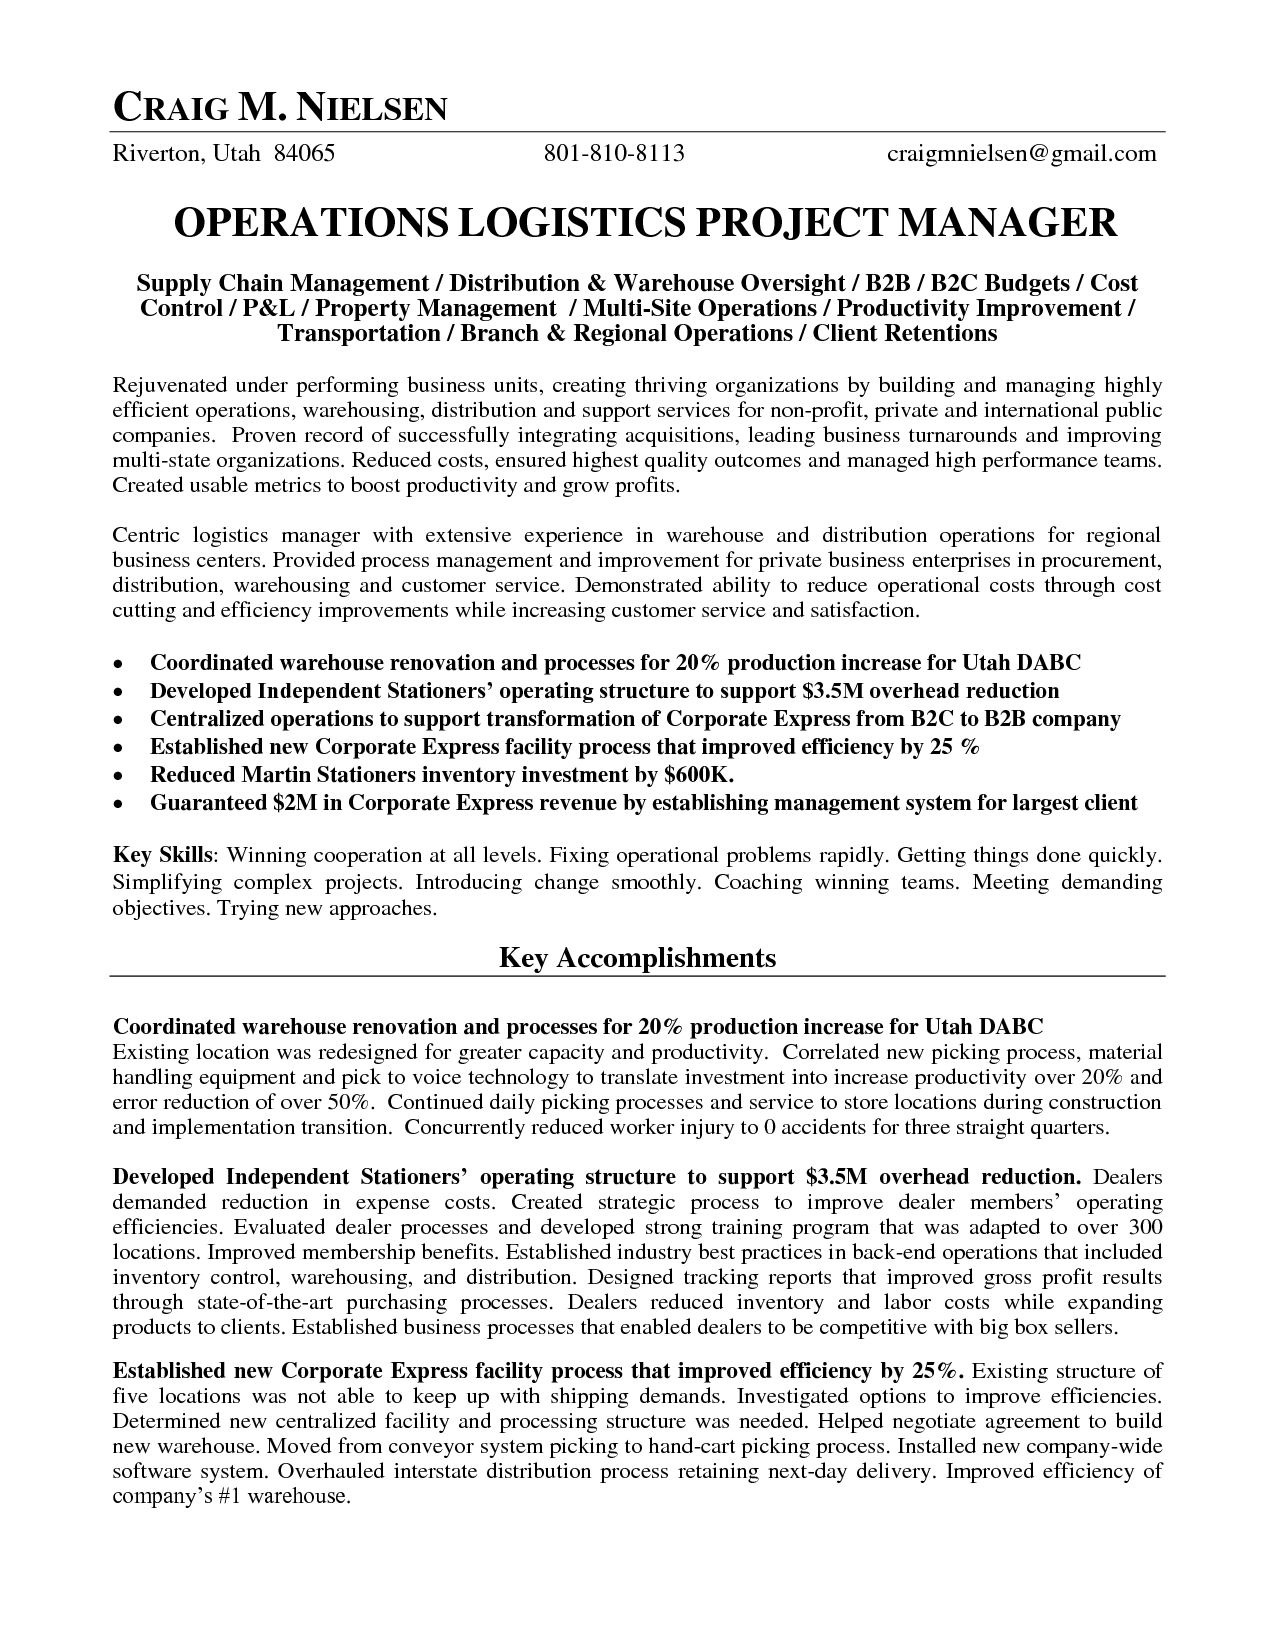 District Manager Resume Logistics Operations Manager Resume  Operations Logistics Project